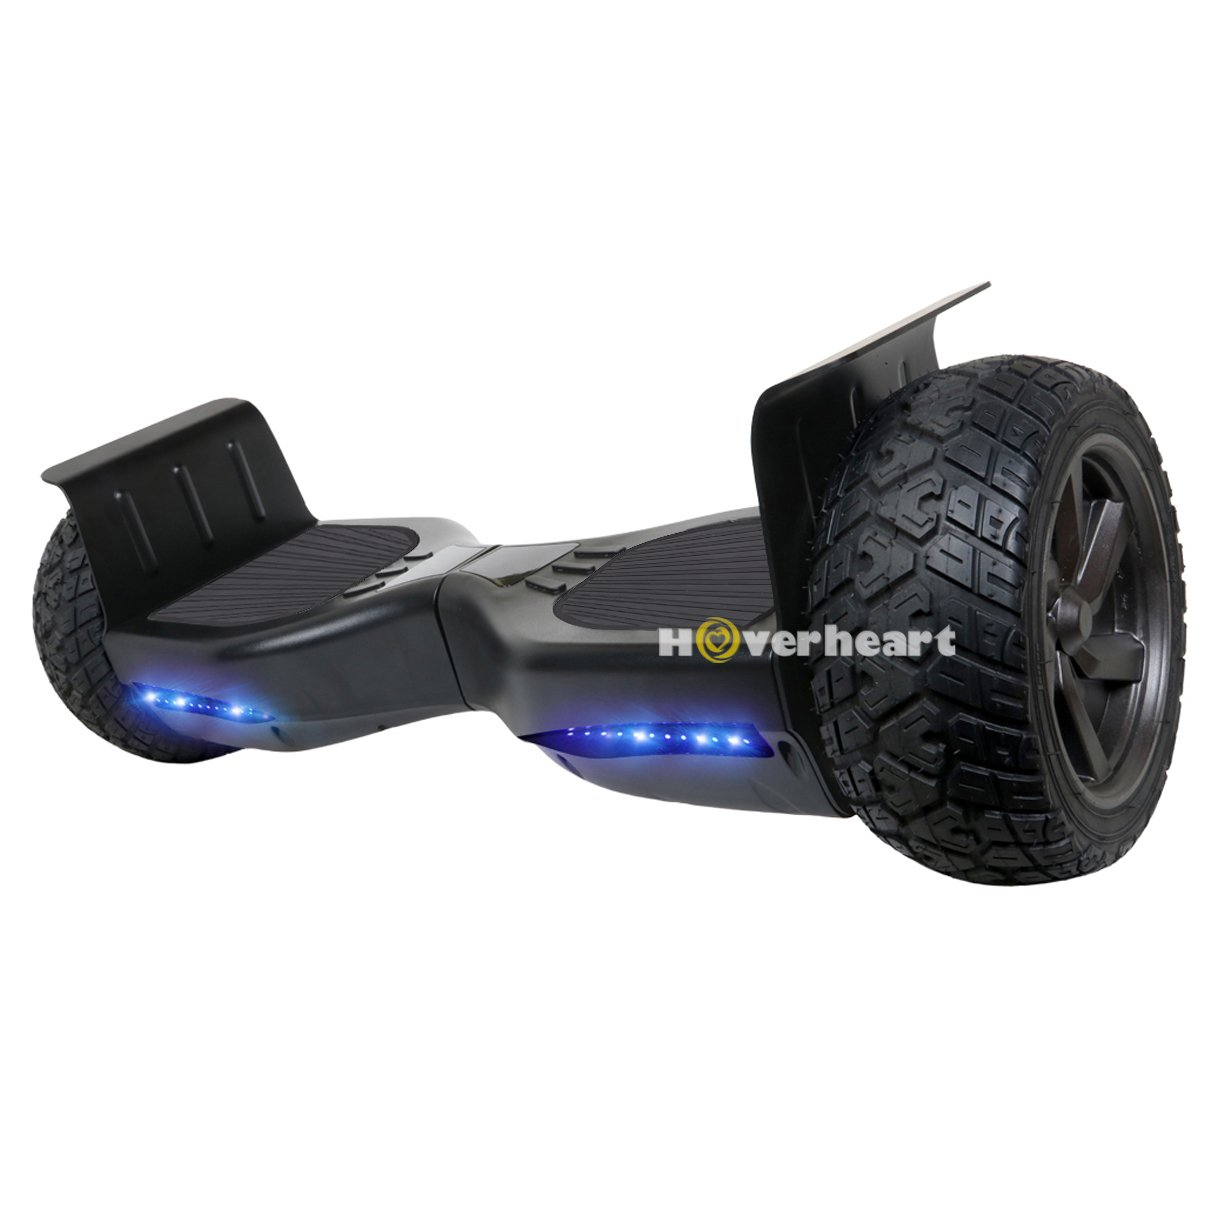 Hoverboard 8.5'' Two-Wheel Metal Self Balancing All-Terrain Alloy Wheel Electric Scooter UL 2272 Certified (Black) by HOVERHEART